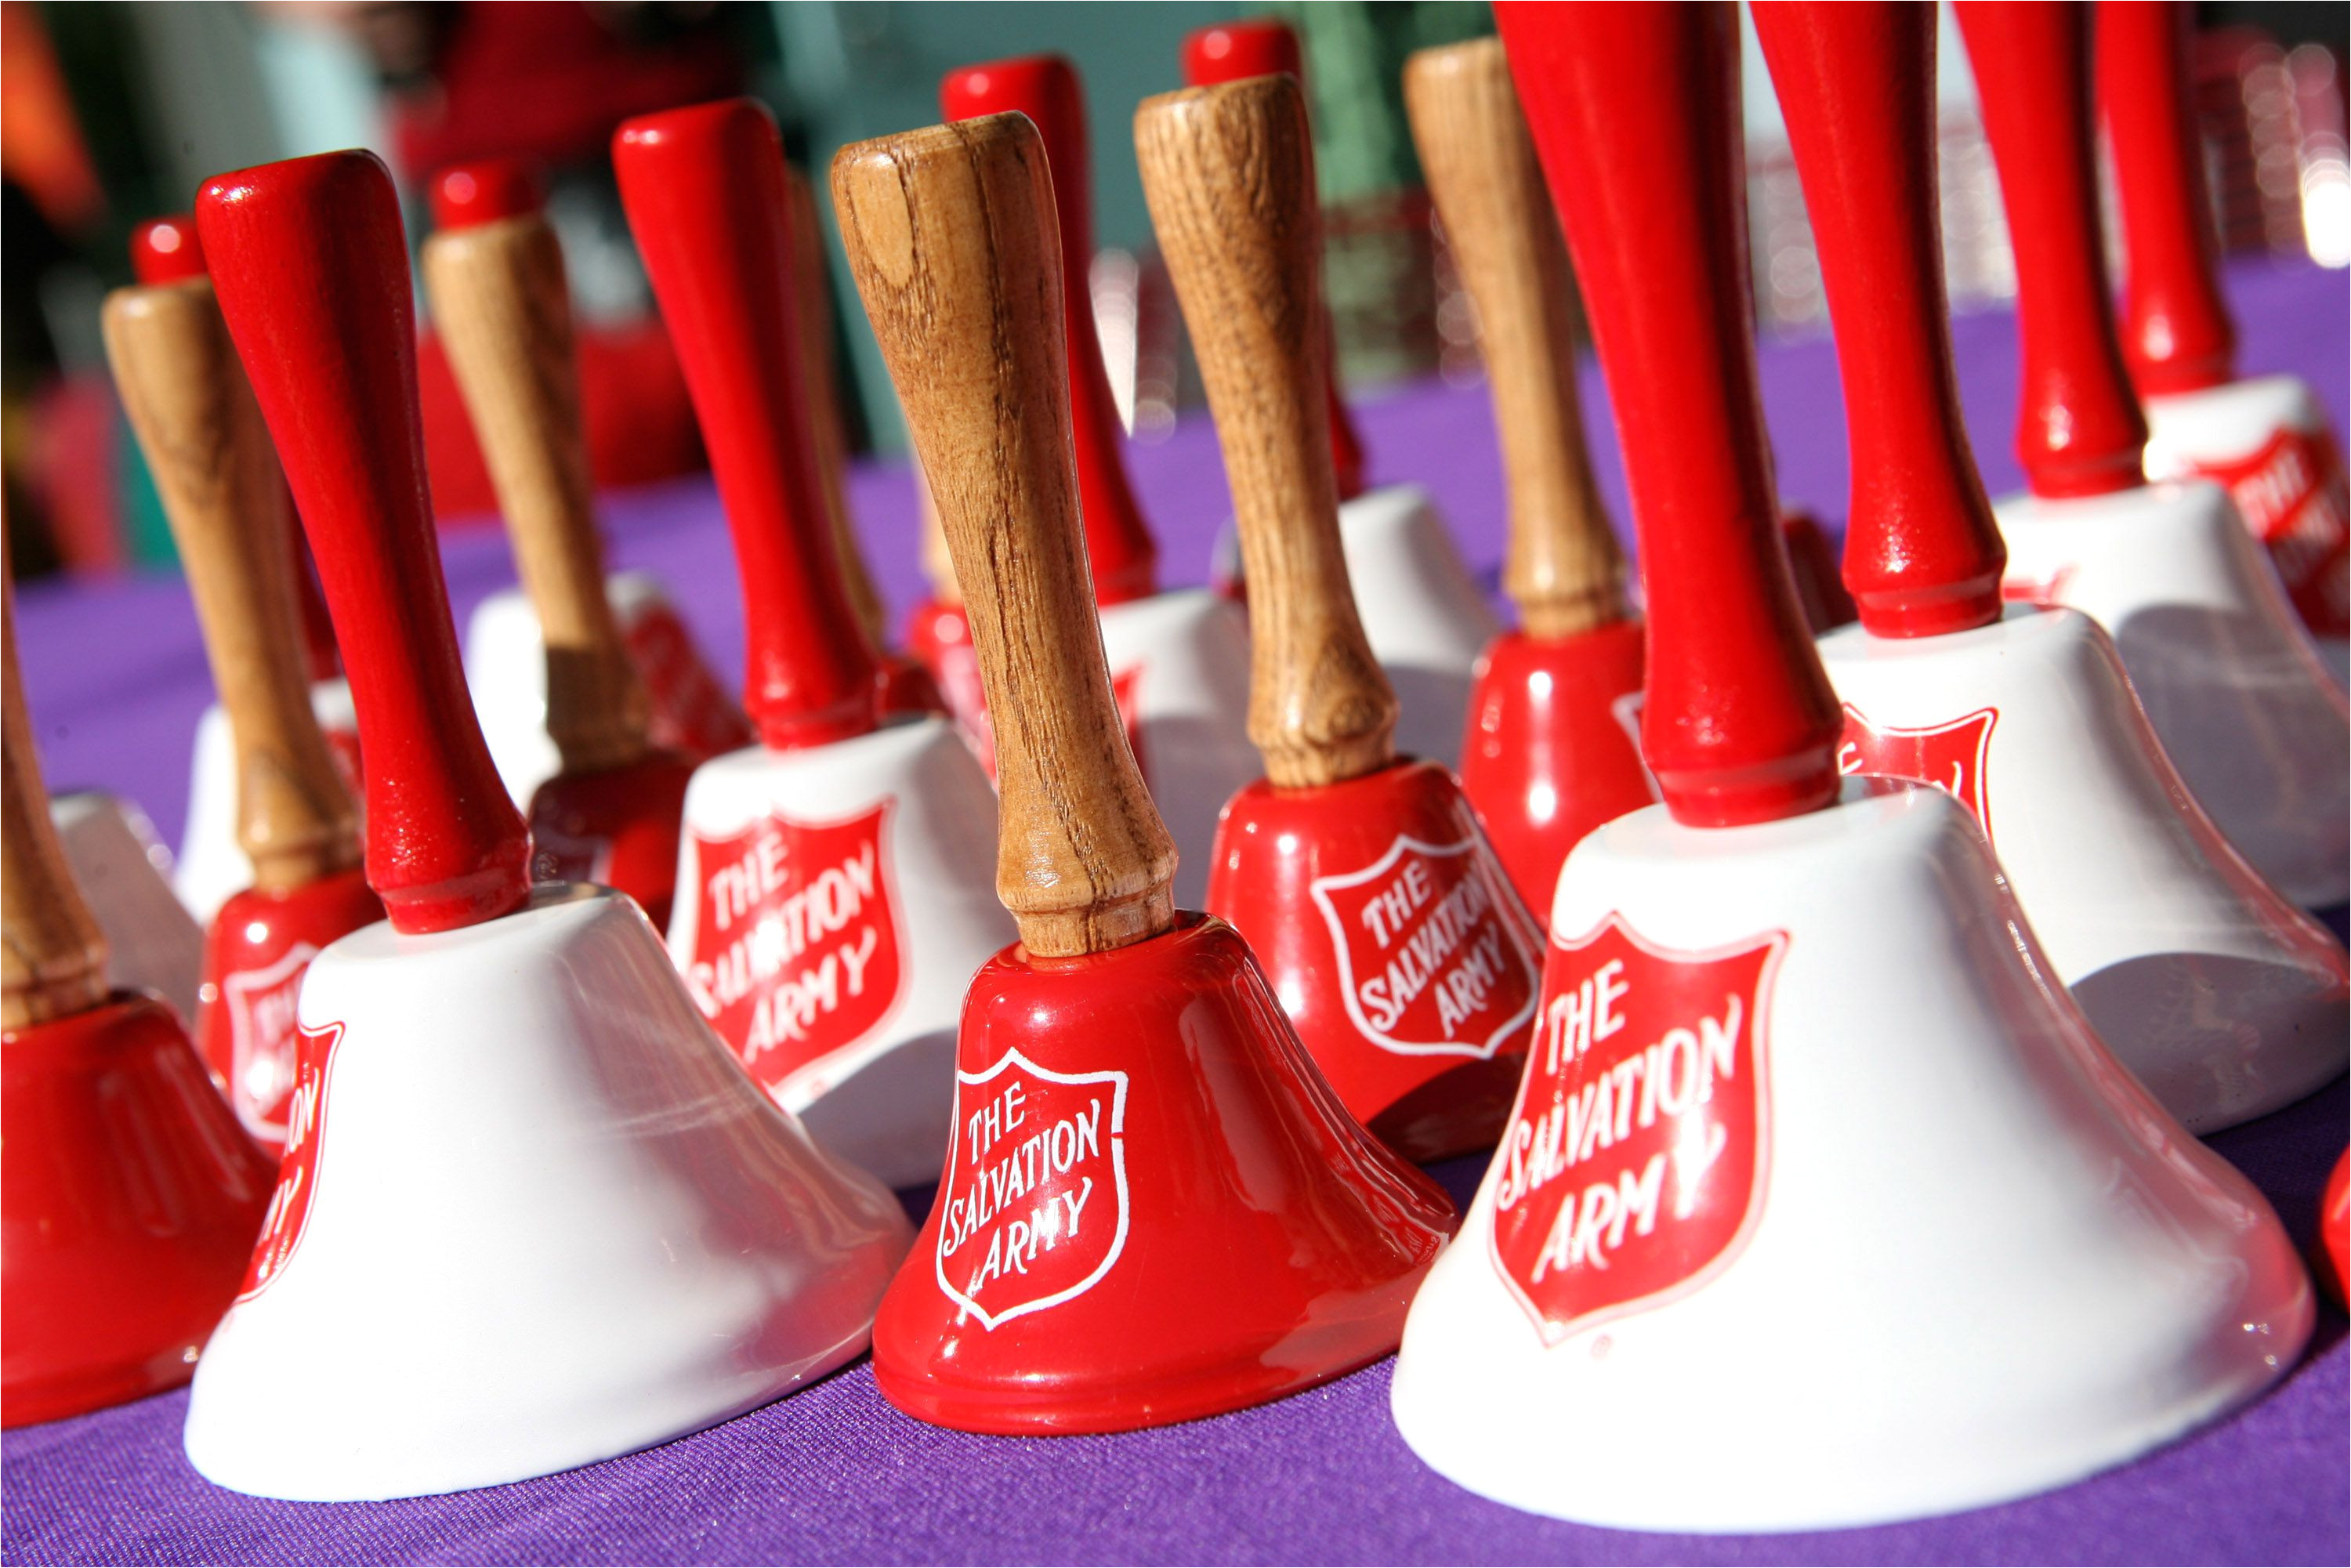 the 20th annual salvation army celebrity rotary bell ring in the holiday season 107118051 5b0eff720e23d90036f8a6fd jpg